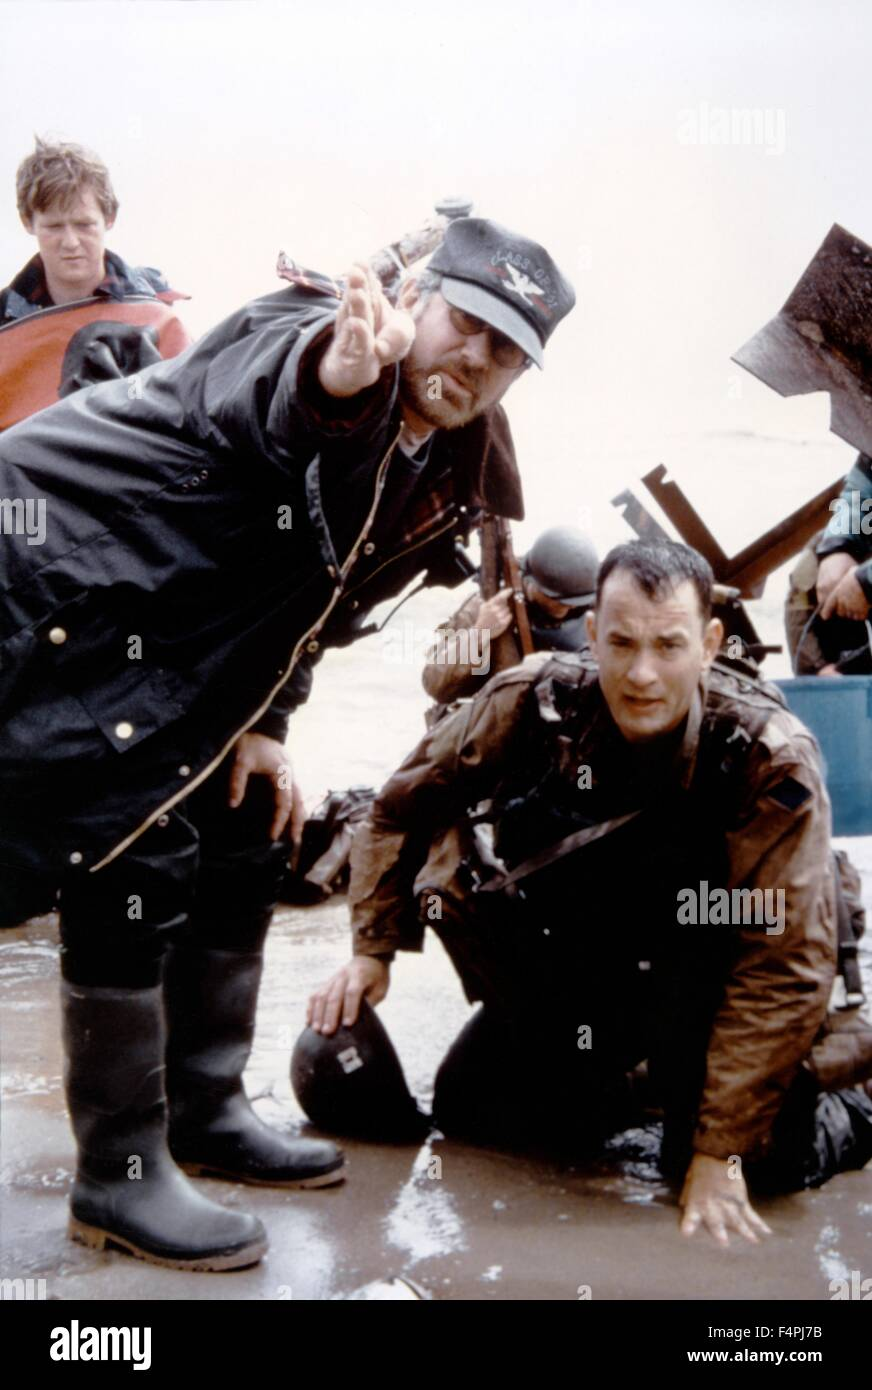 On the set, Steven Spielberg directs Tom Hanks / Saving Private Ryan / 1998 directed by Steven Spielberg [Dreamworks - Stock Image